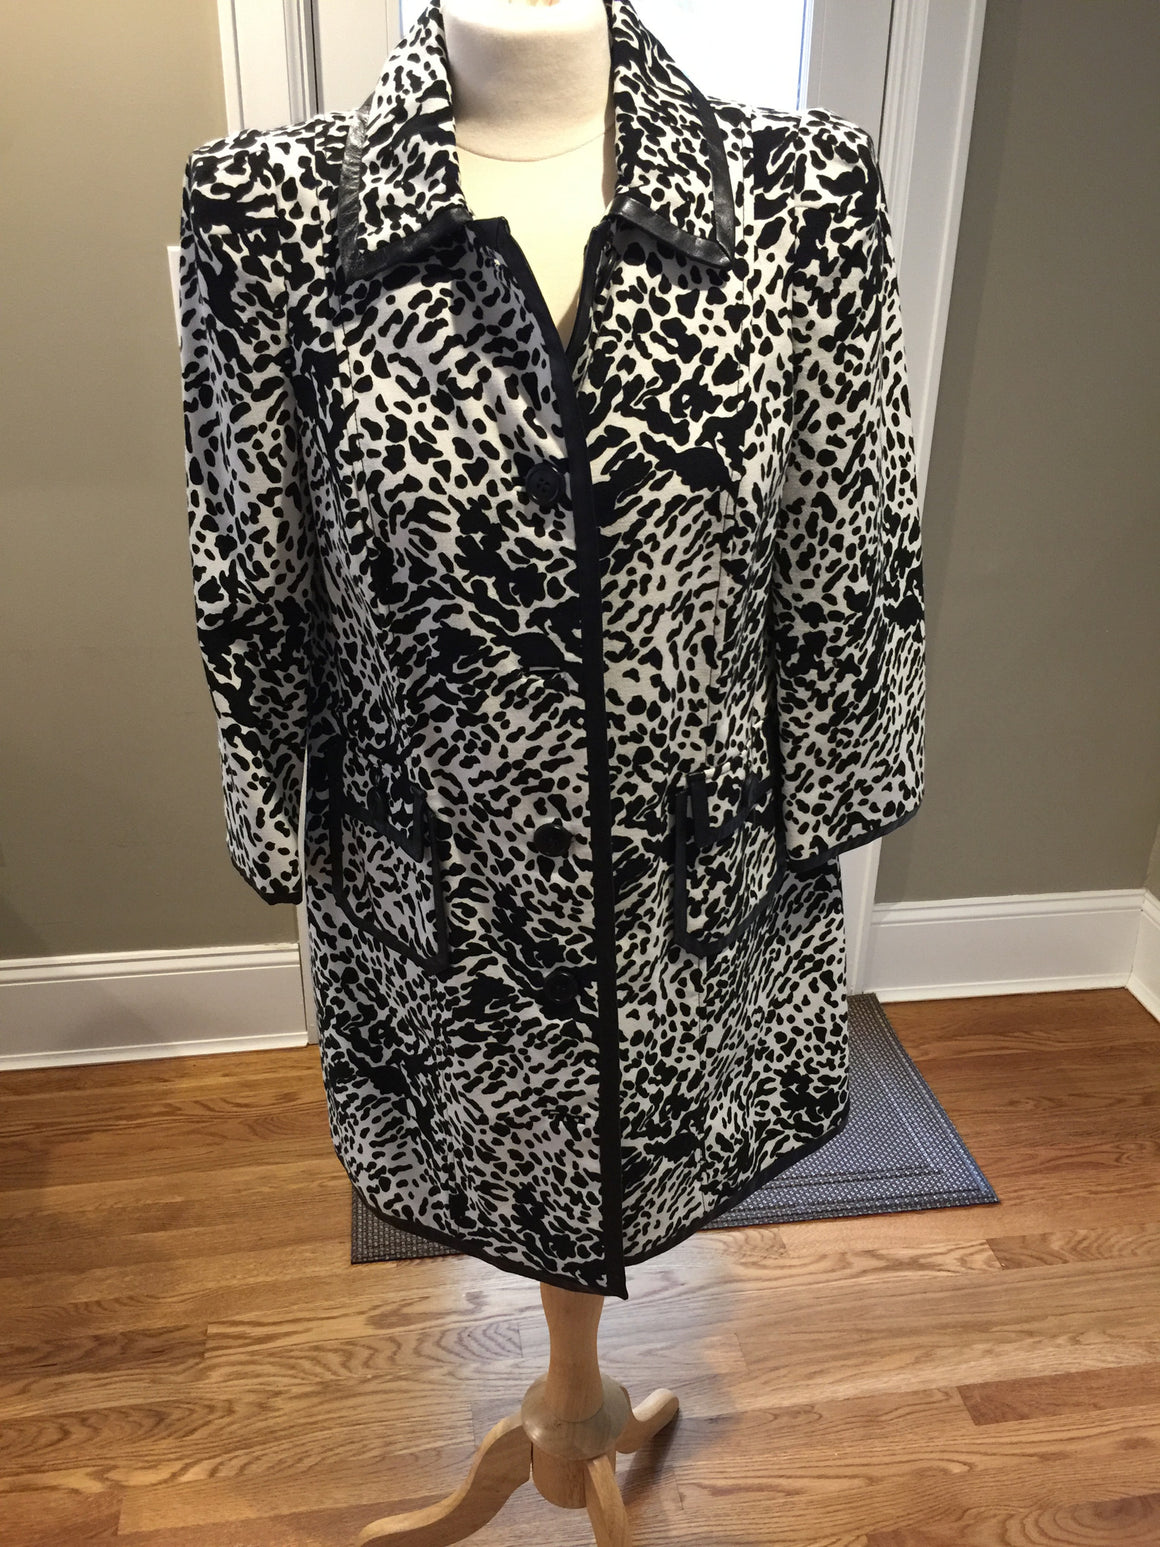 Very Chic Tibi Coat - New York Authentic Designer - Tibi